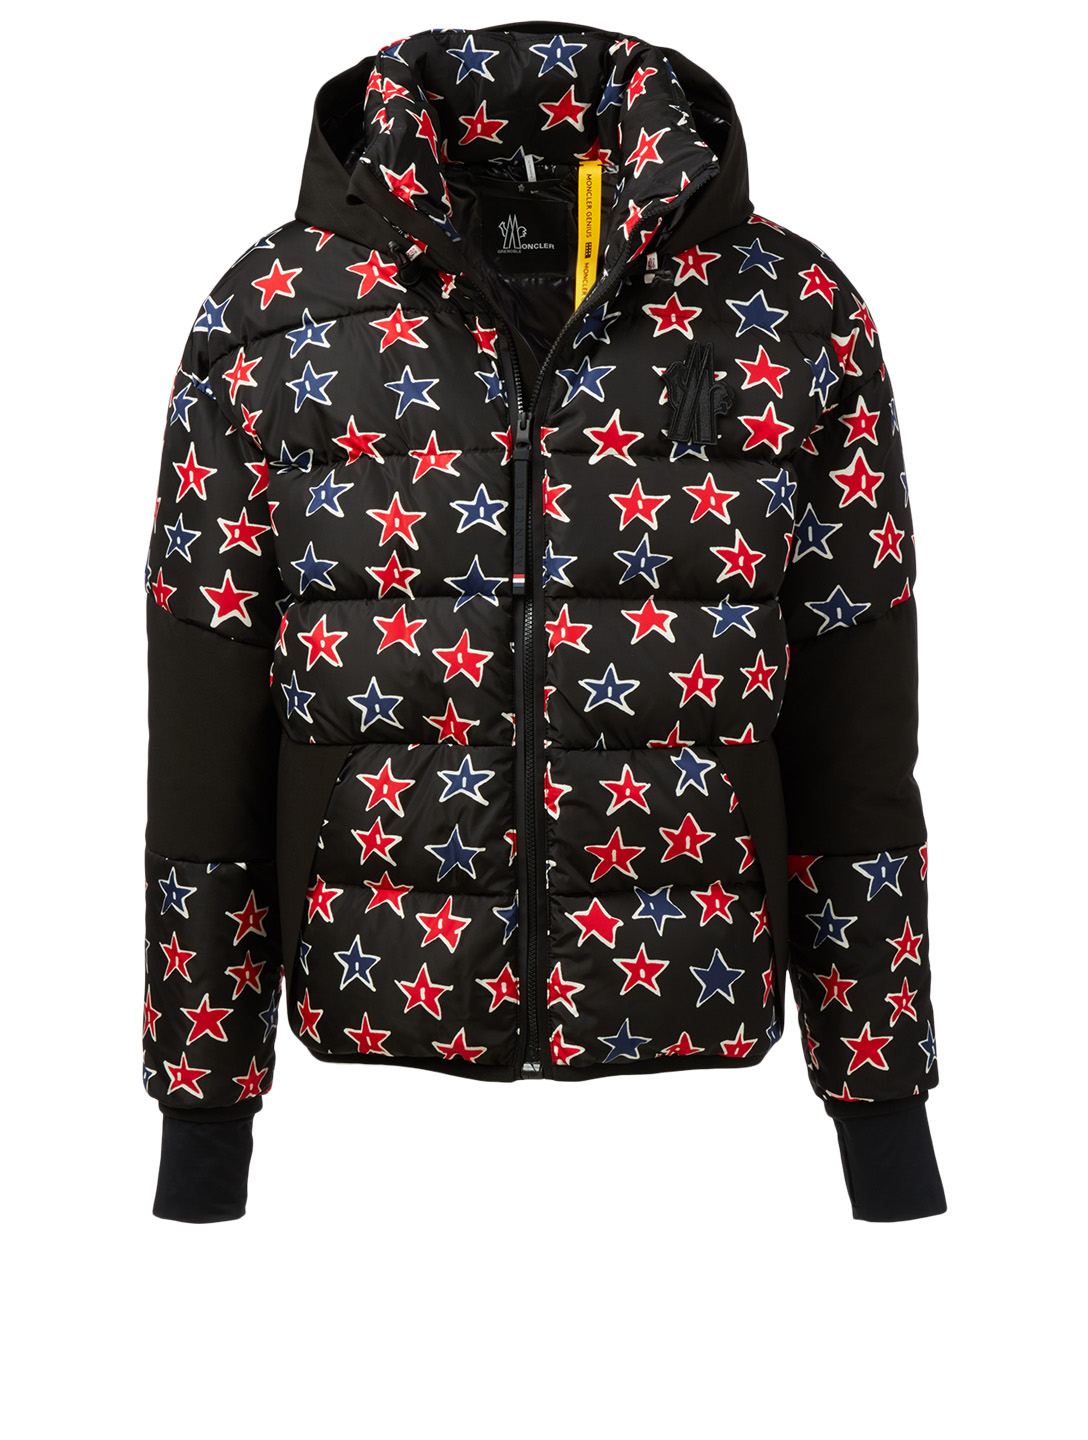 MONCLER GENIUS Gollinger Jacket In Star Print Men's Black